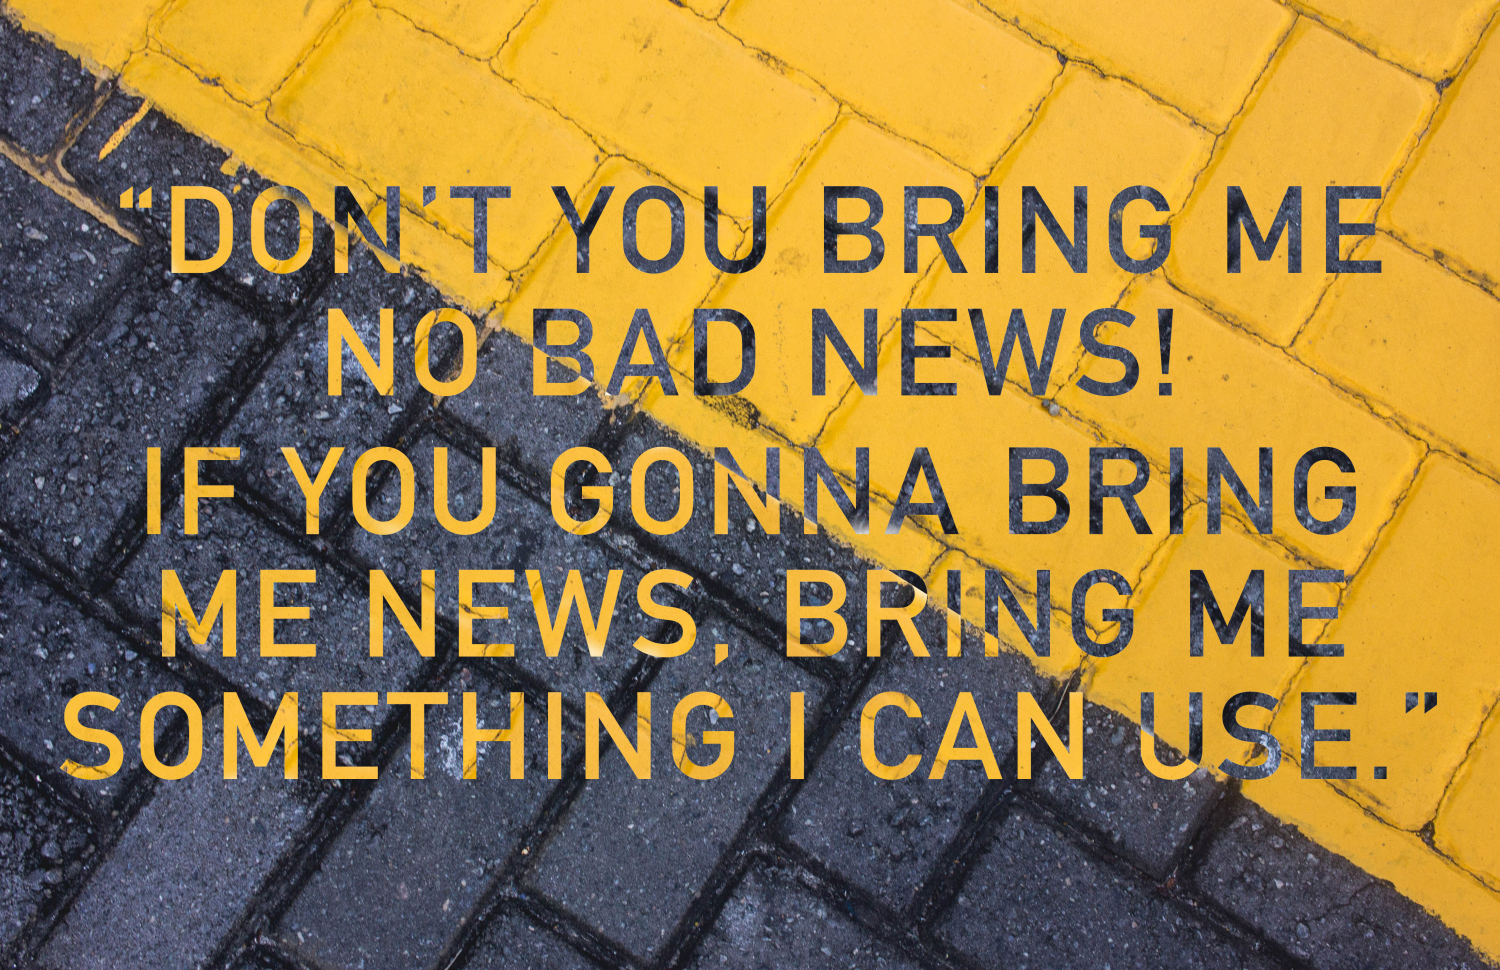 Don't you bring me no bad news!